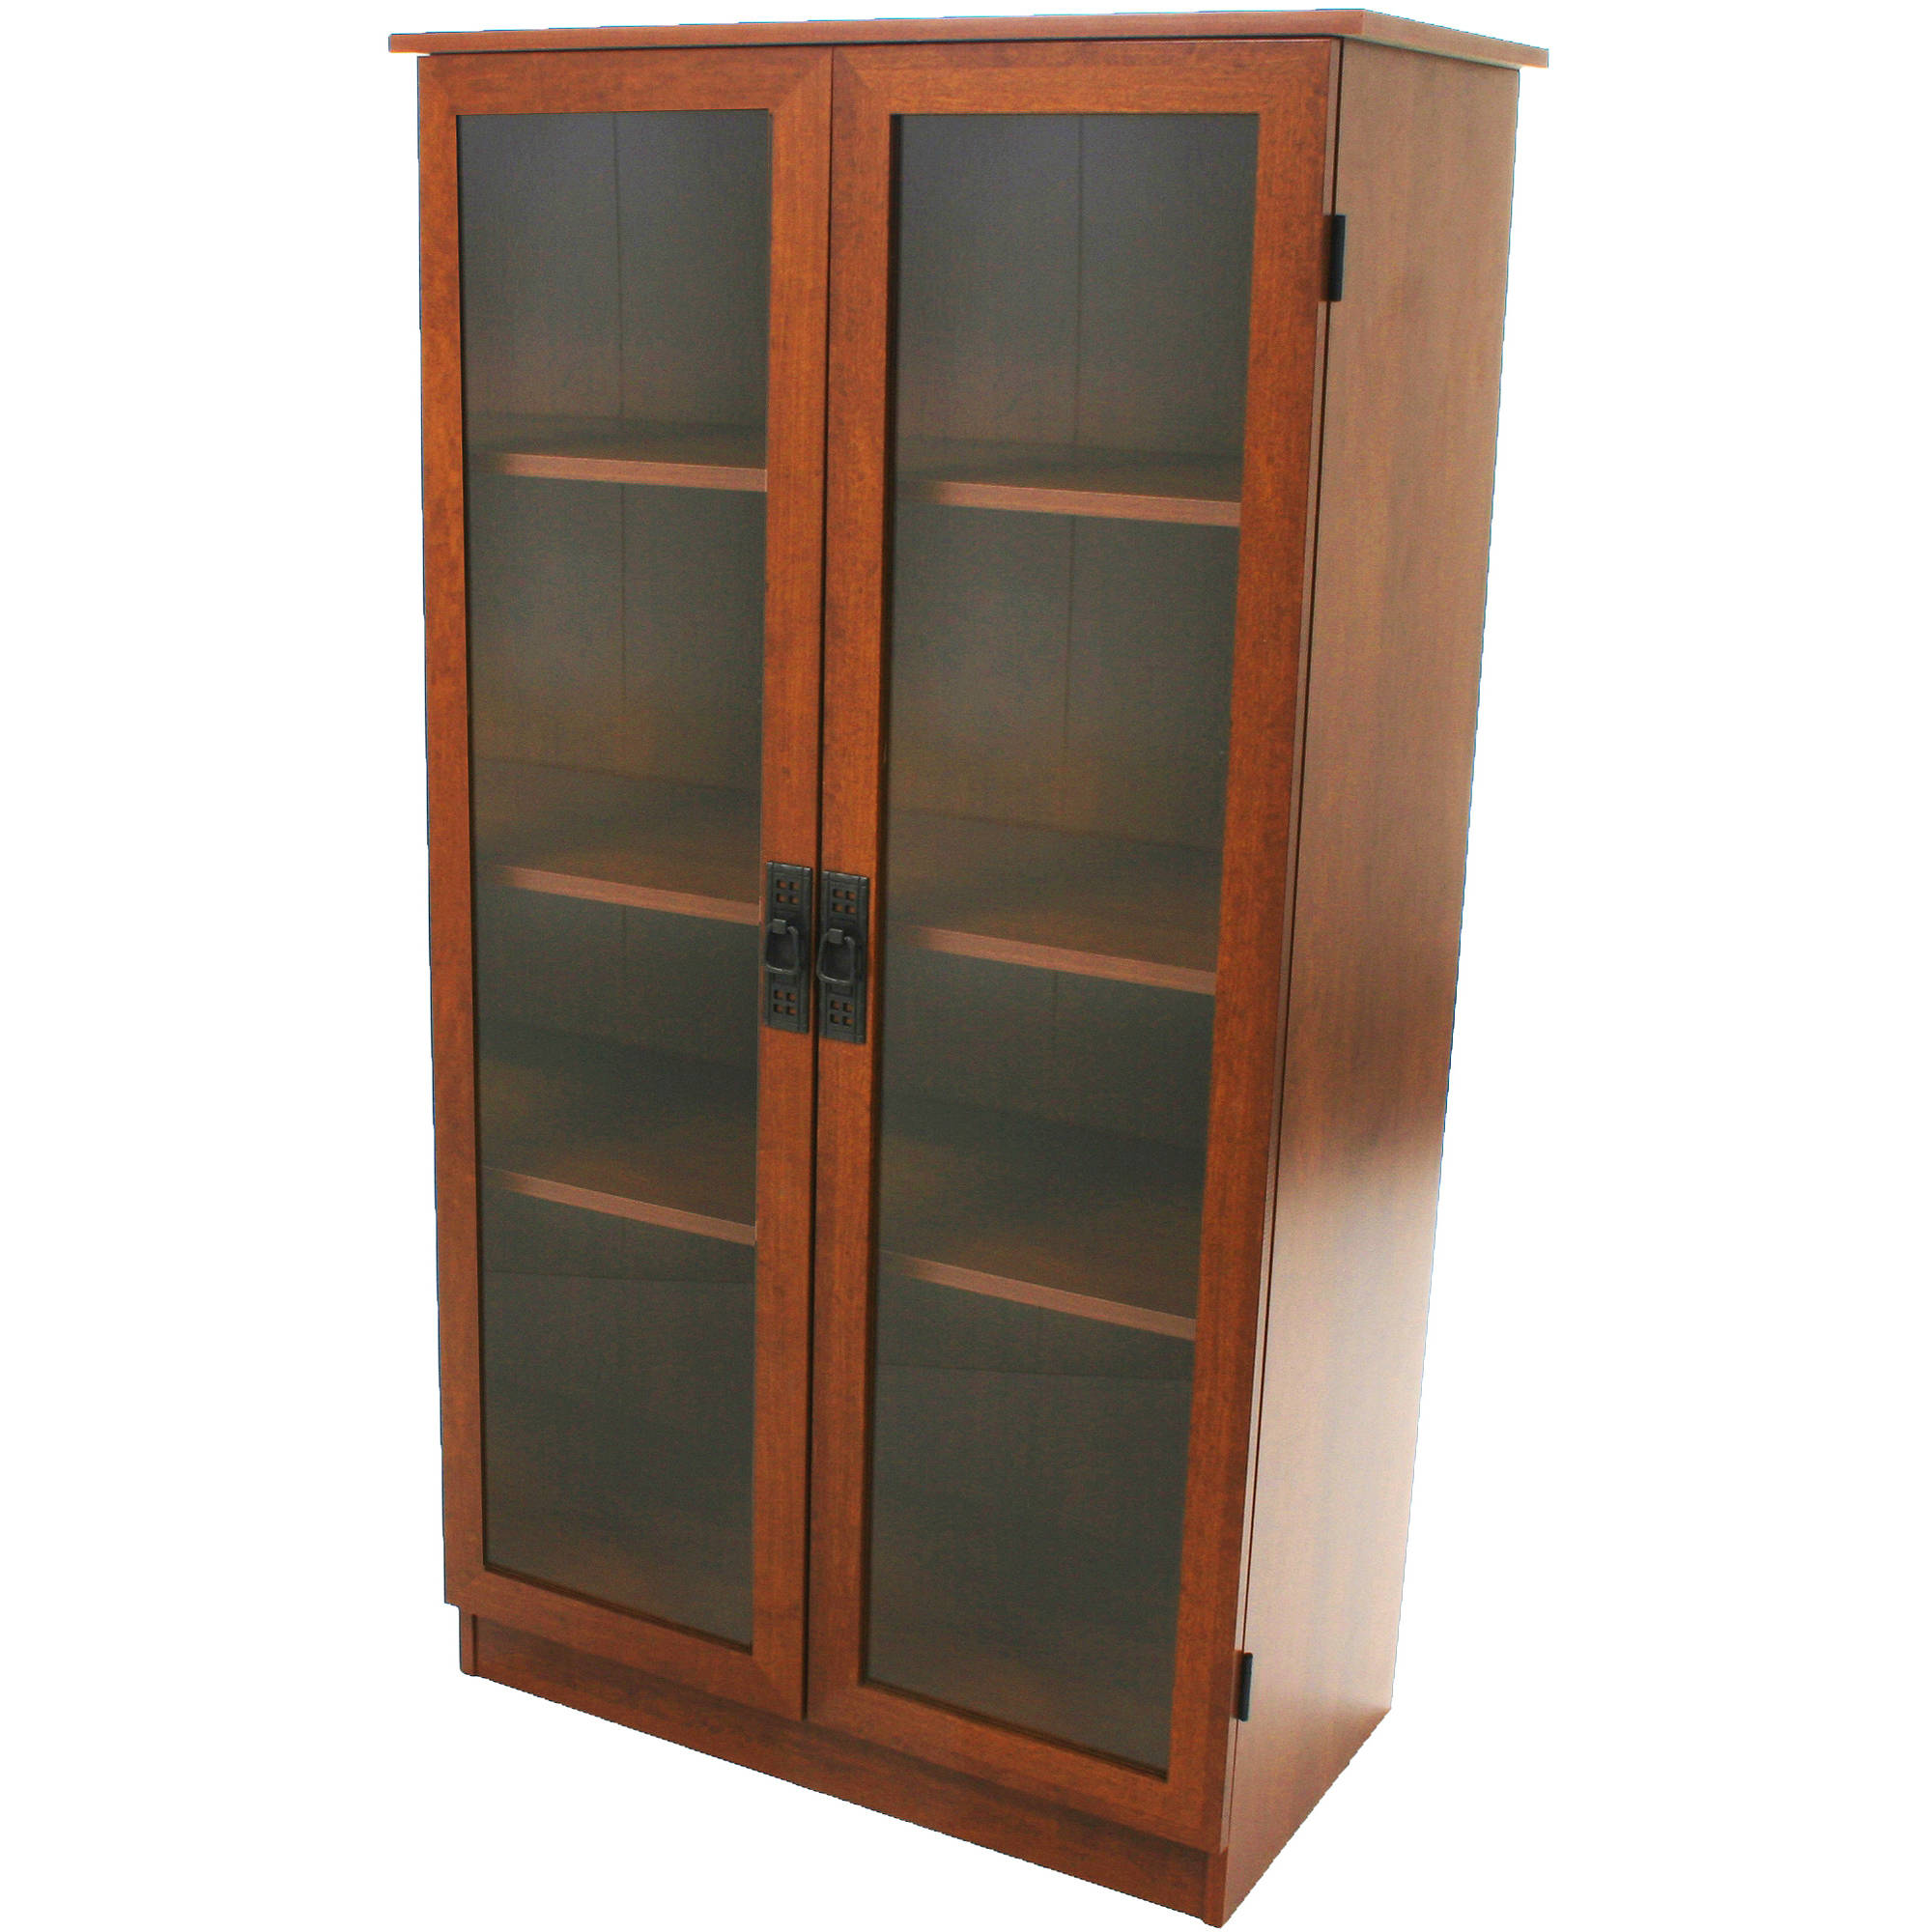 Details About Bookcase Storage Cabinet 4 Shelves 2 Glass Doors Bookshelf Brown Oak Finish Home